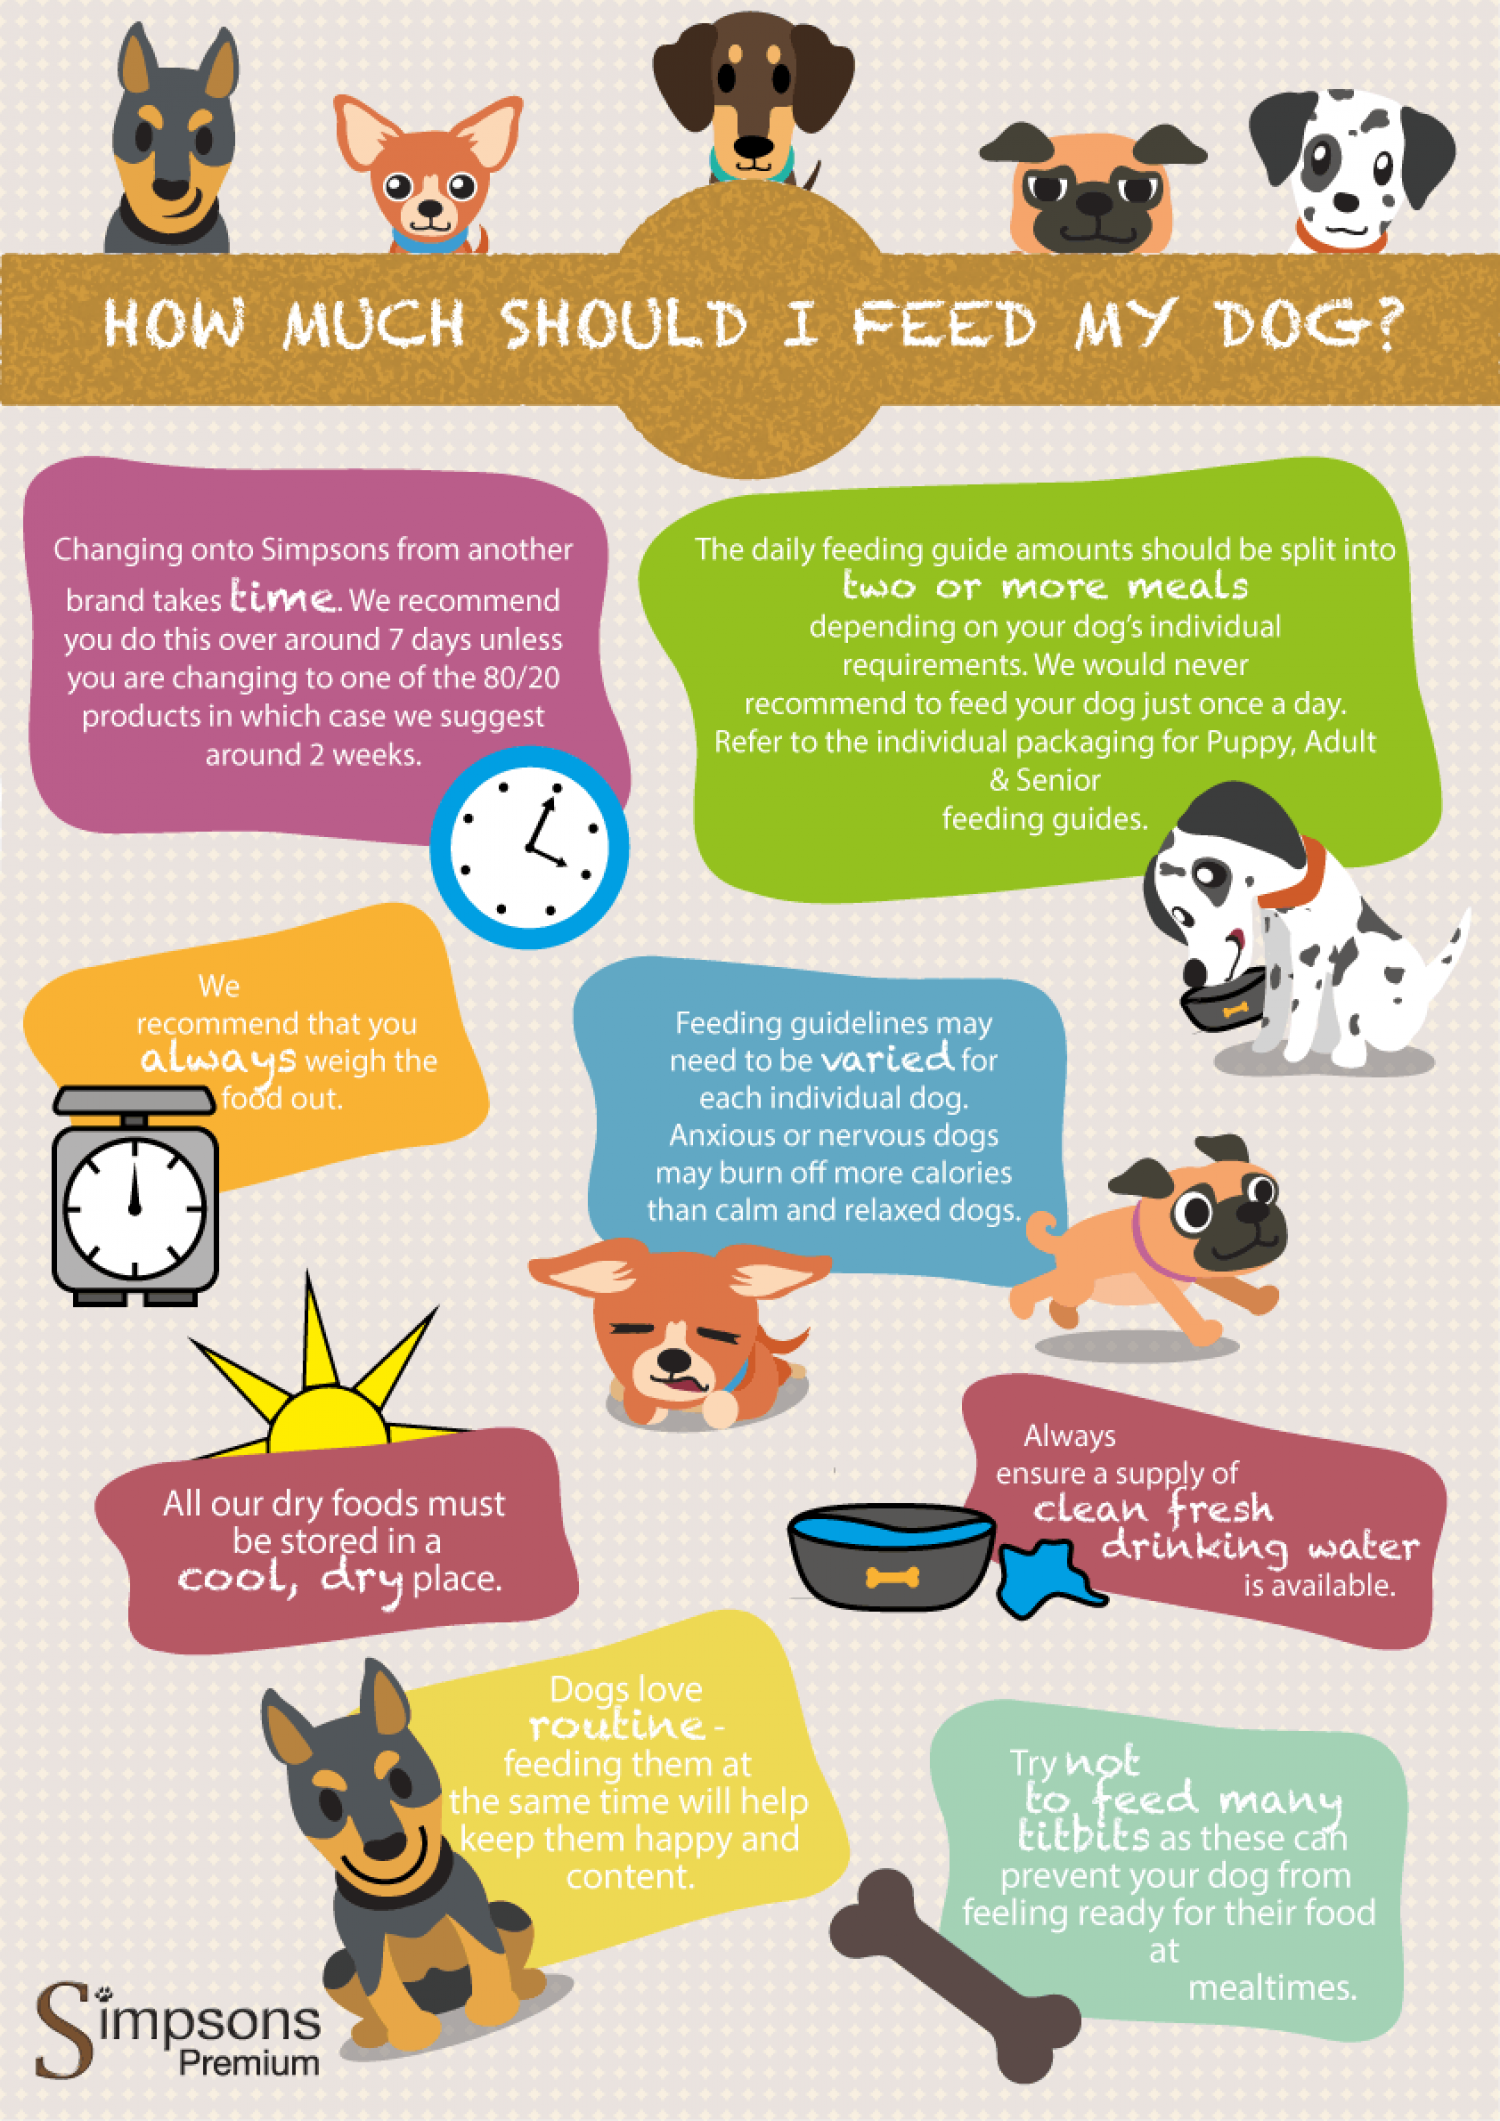 How Much Should I Feed My Dog? Infographic